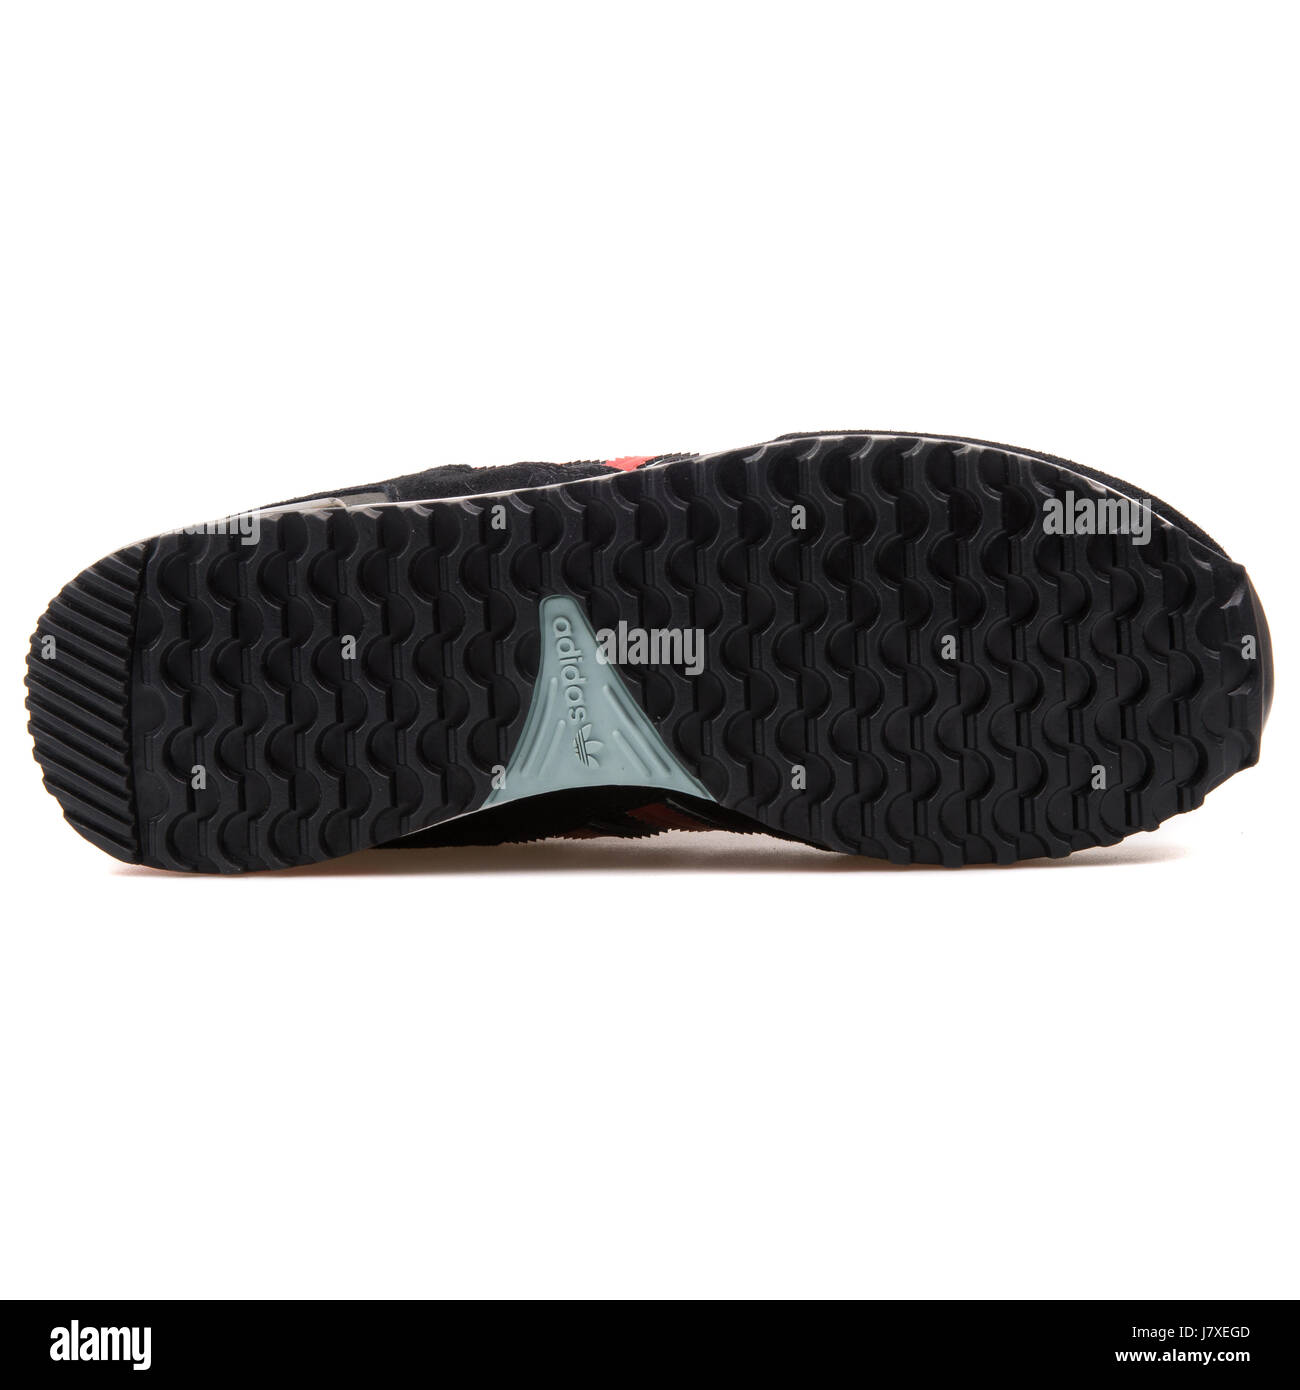 finest selection cf590 96929 Adidas ZX 750 Men s Black with Red Sneakers - B24856 - Stock Image